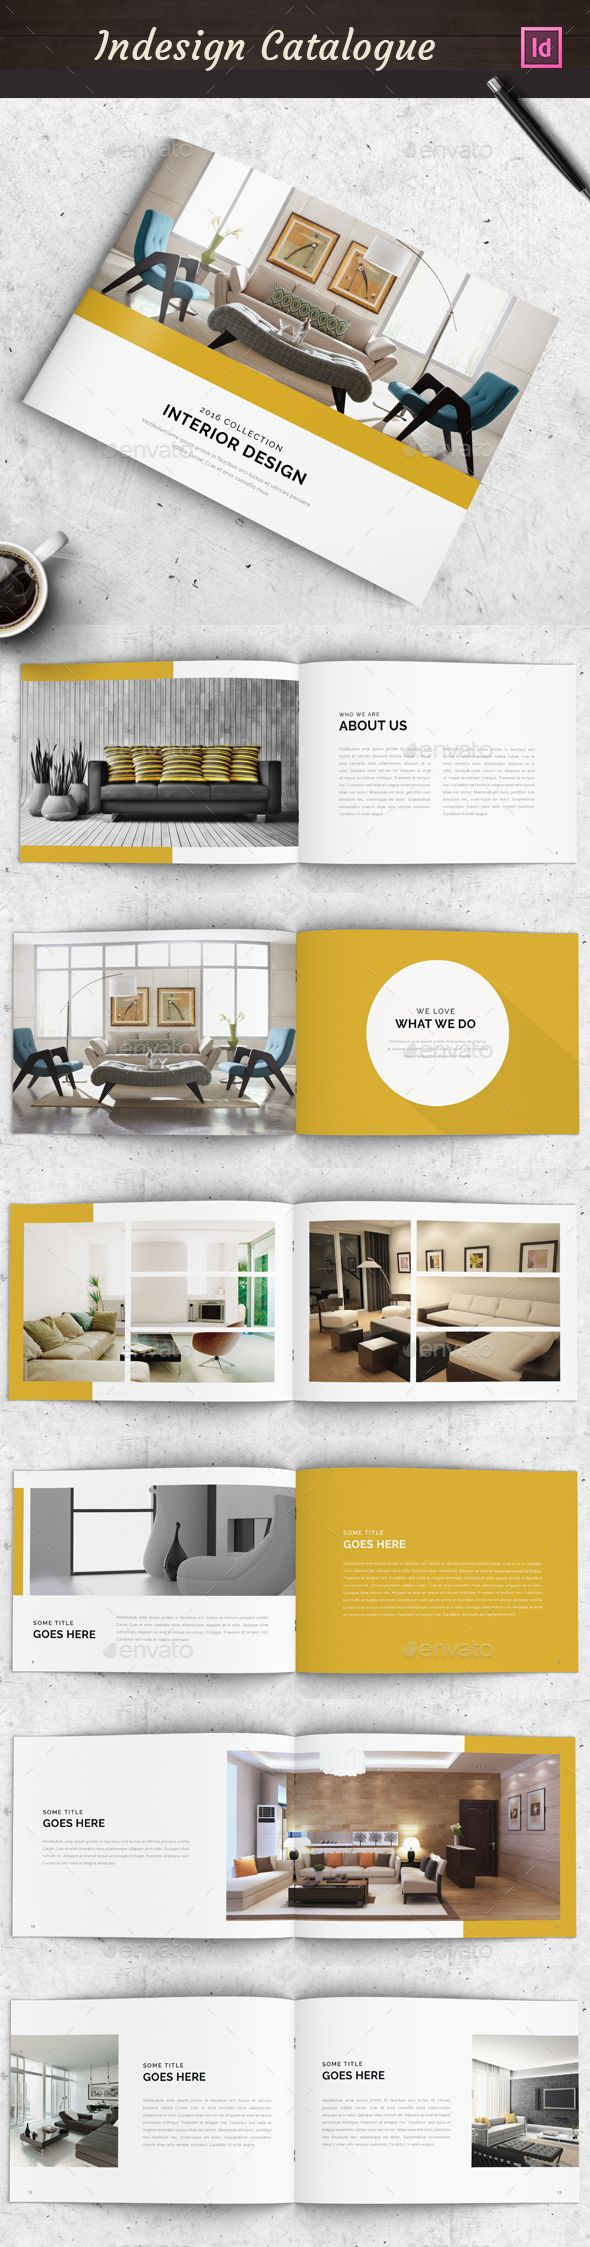 Interior Design See More 12 Pages A5 Minimal Portfolio Brochure Template InDesign INDD Download Here